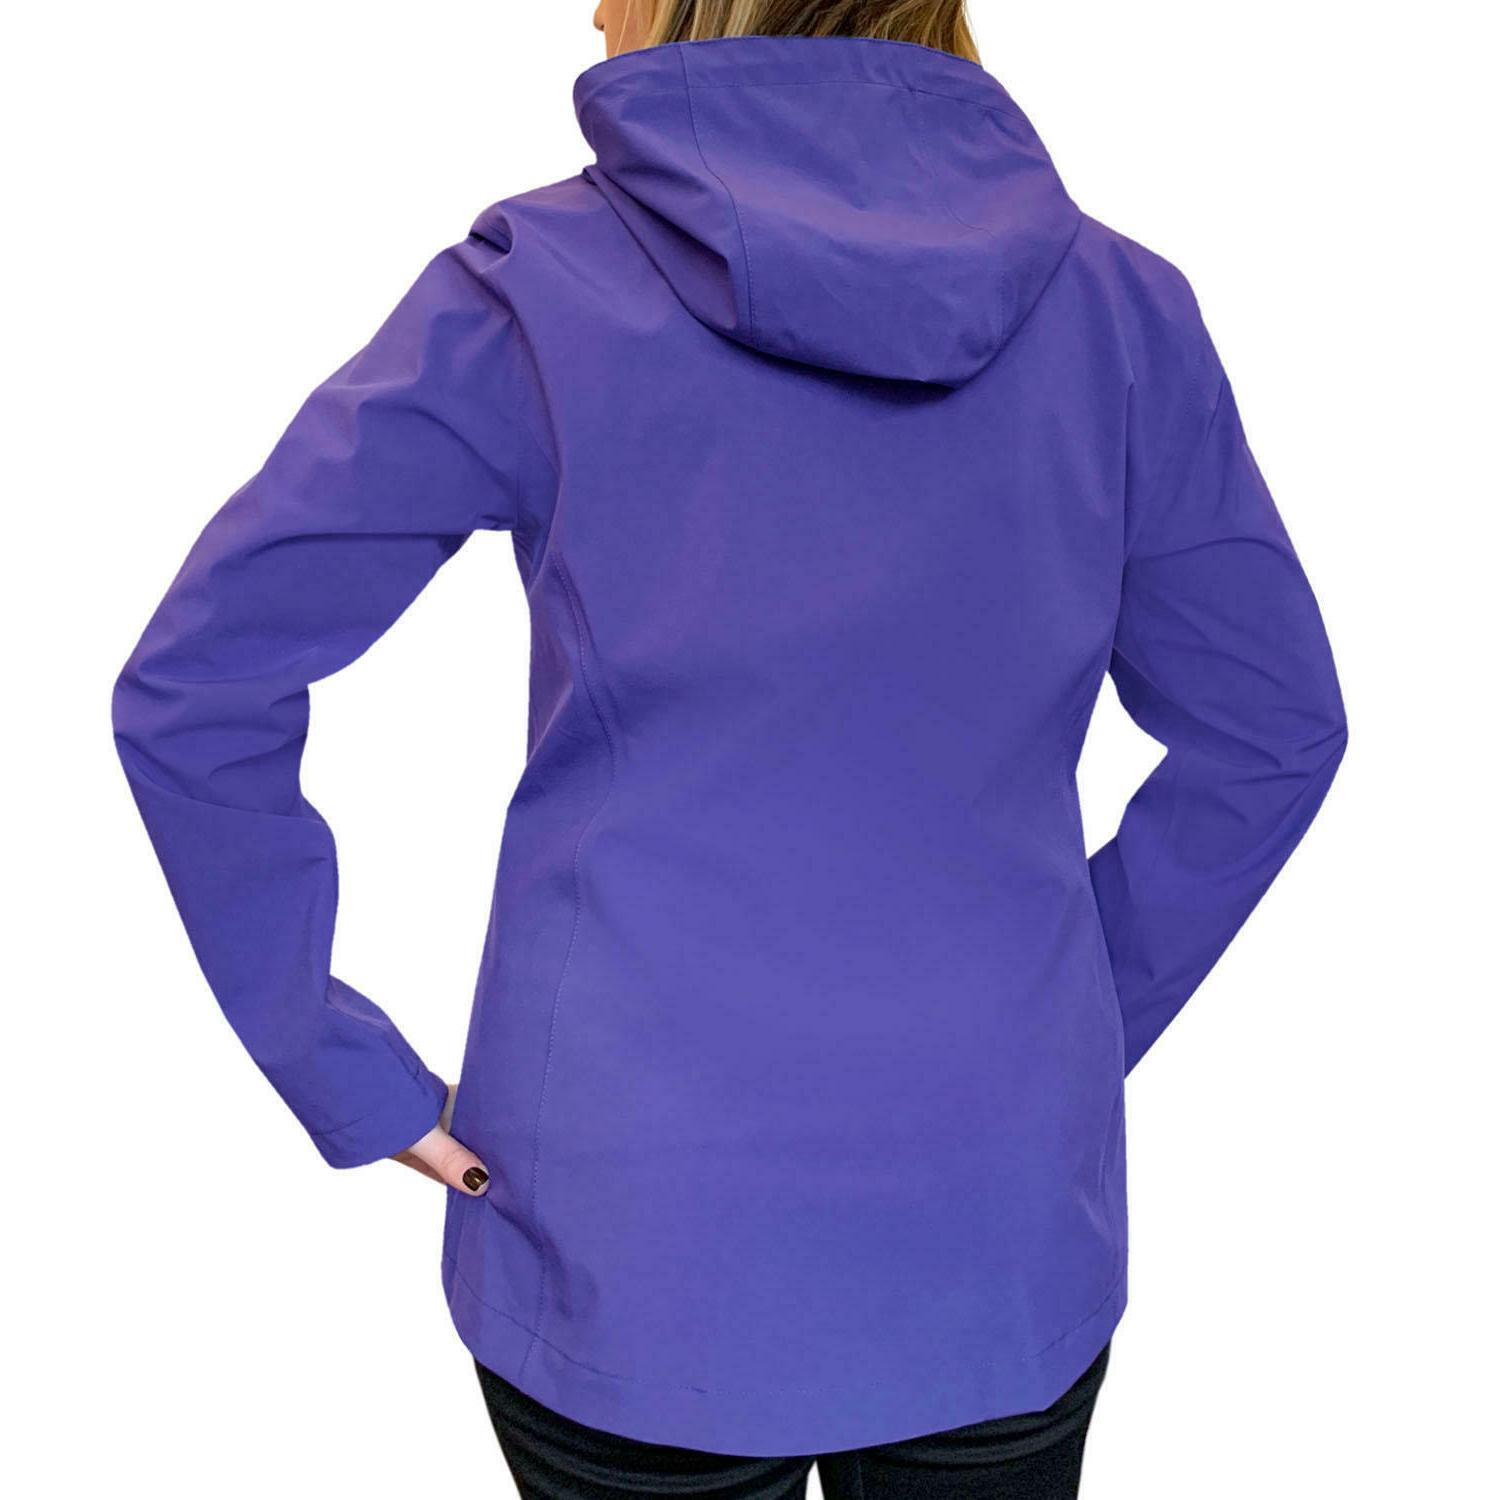 Women's rain windbreaker packable S M XL 2X